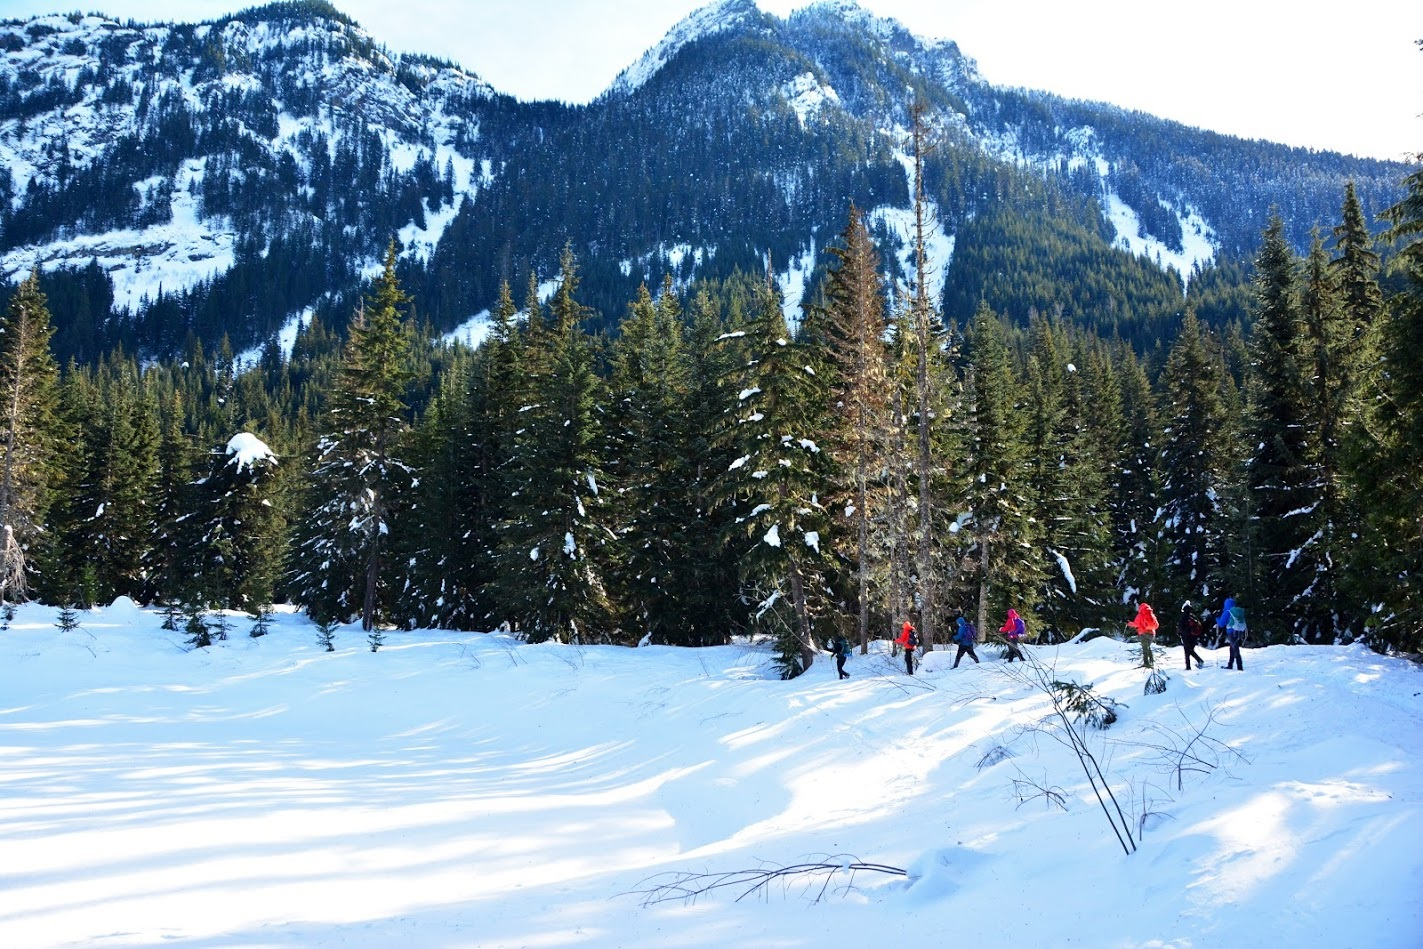 Sold Out - Snowshoeing Gold Creek Pond at Snoqualmie Pass